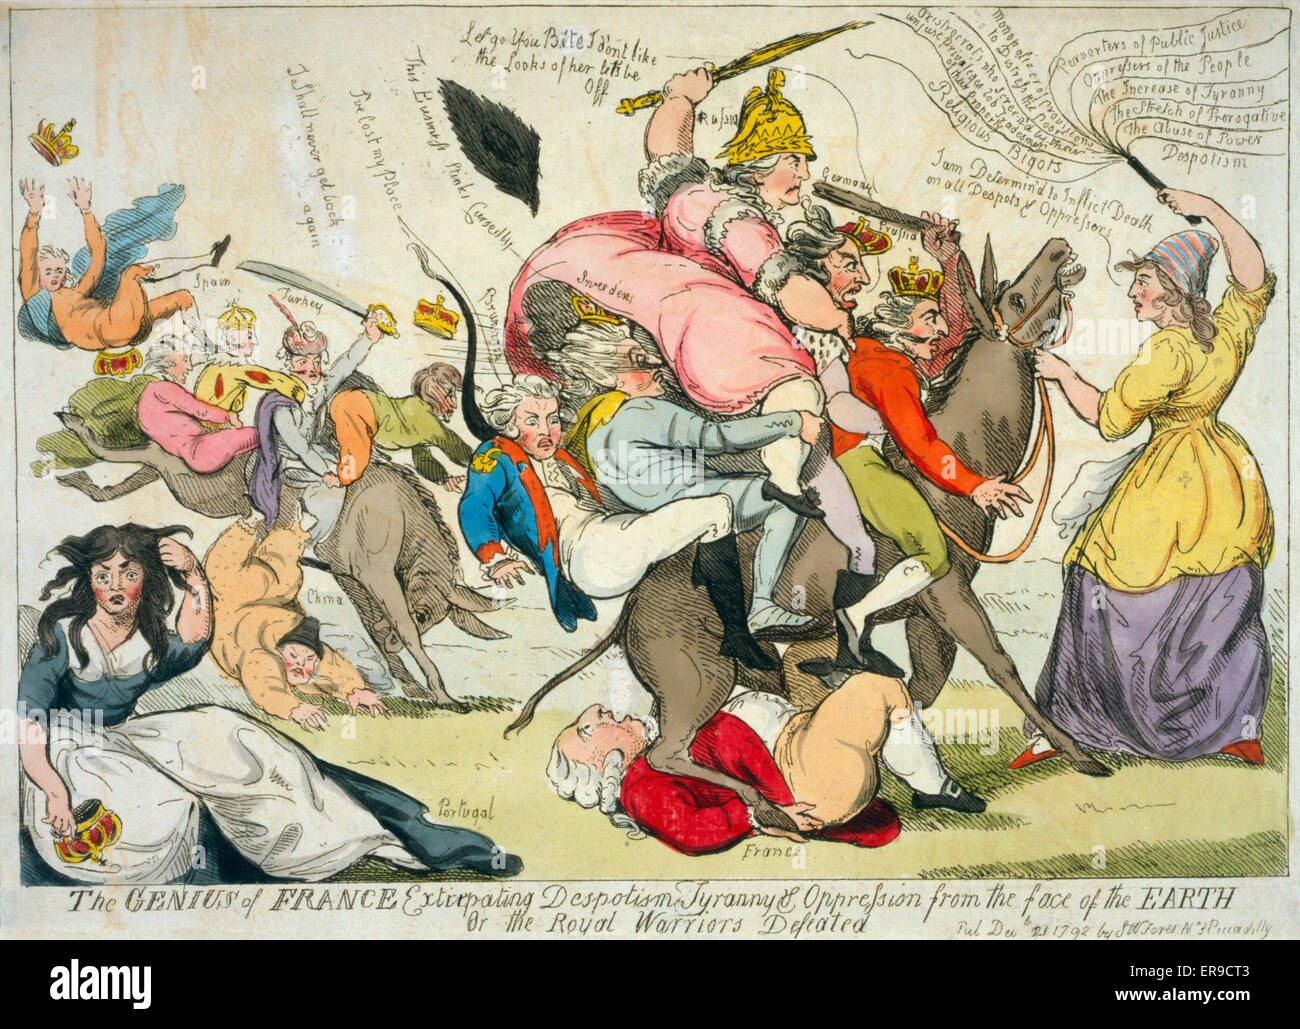 The genius of France extirpating despotism tyranny & oppression from the face of the earth Or the royal - Stock Image